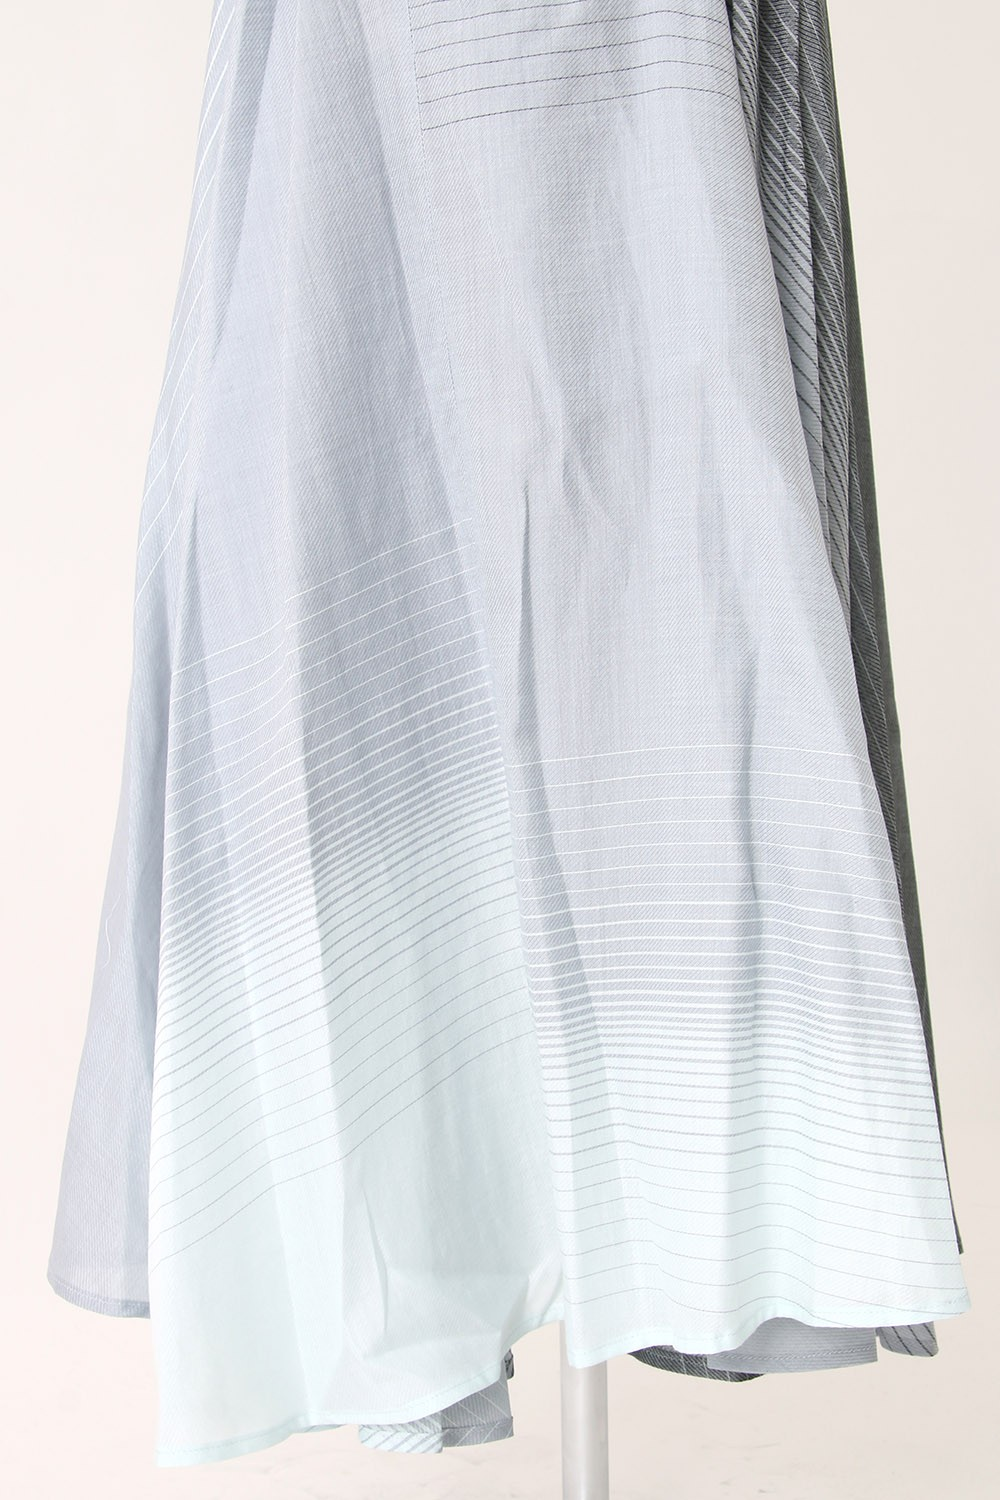 Shuttle Silk Cotton Gradation Skirt - DK11-05-S04